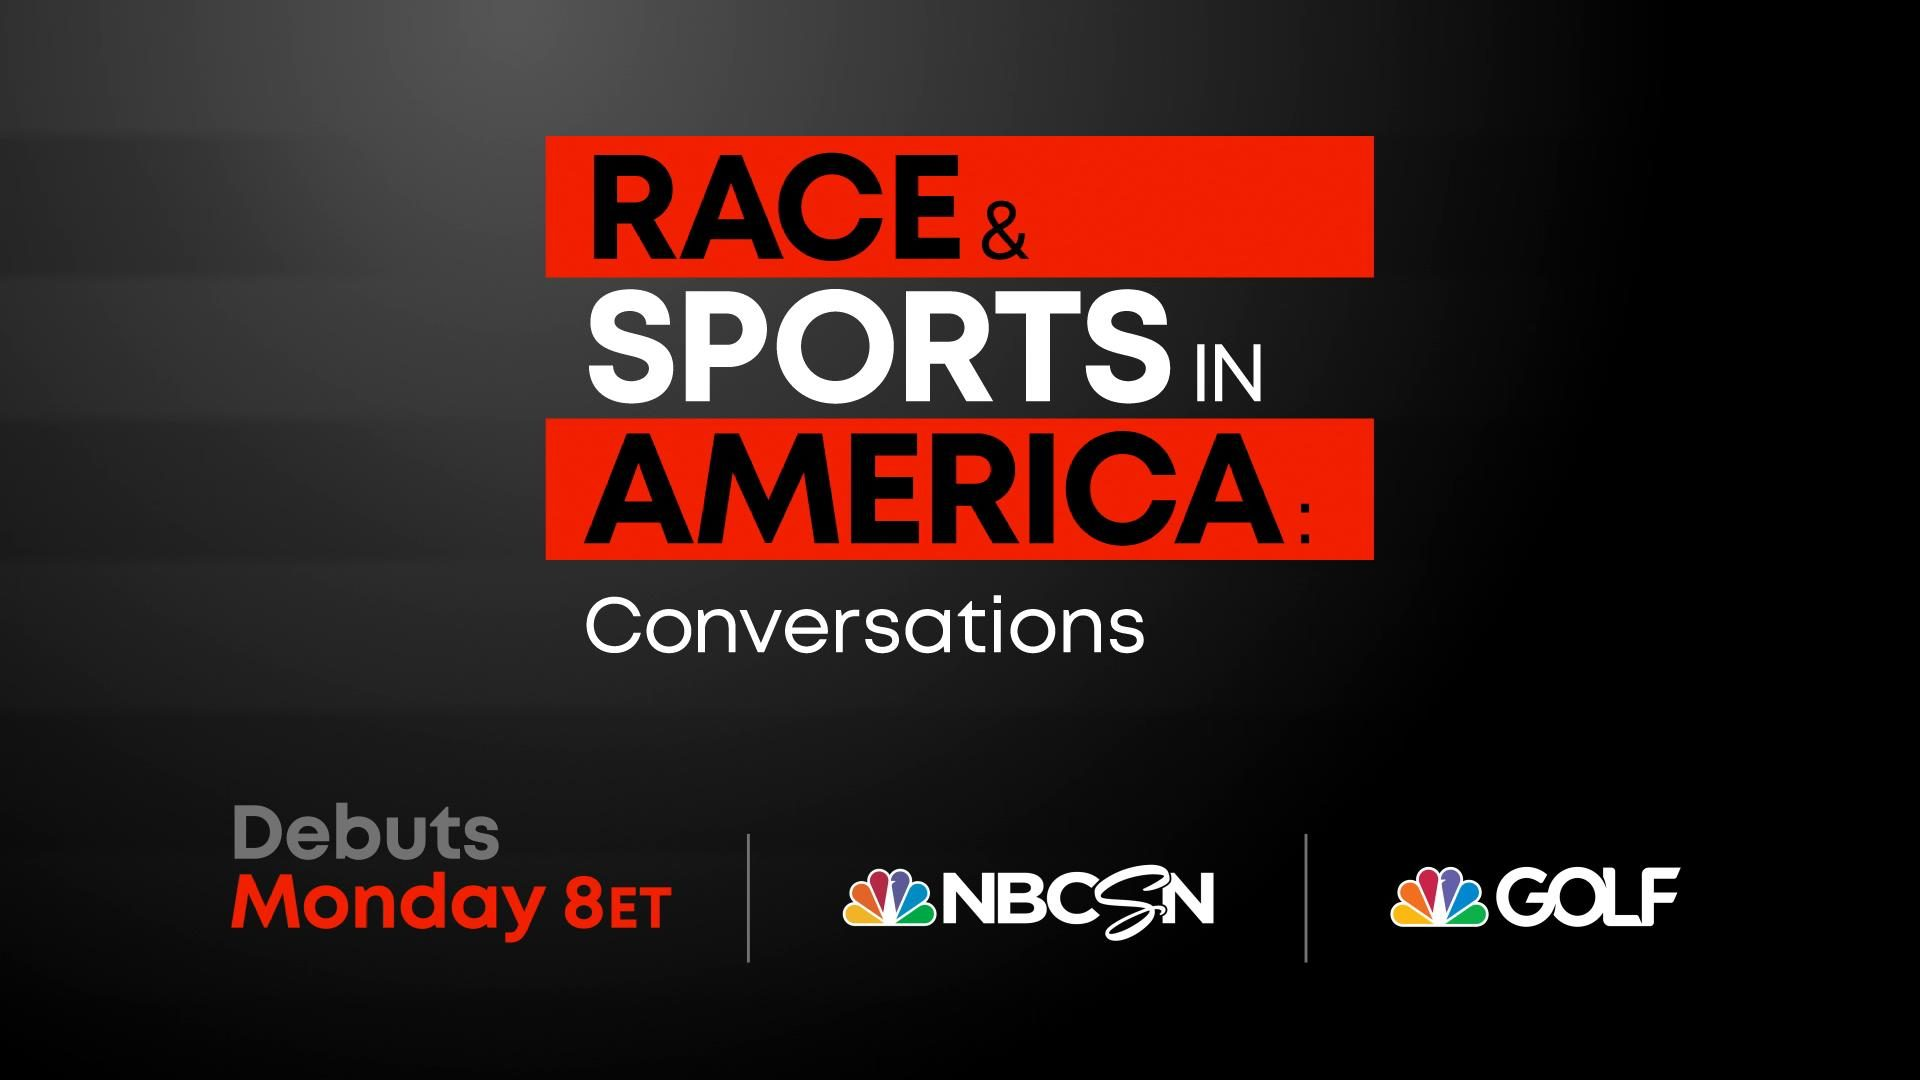 Nbcsn Presents Race And Sports In America Conversations Monday